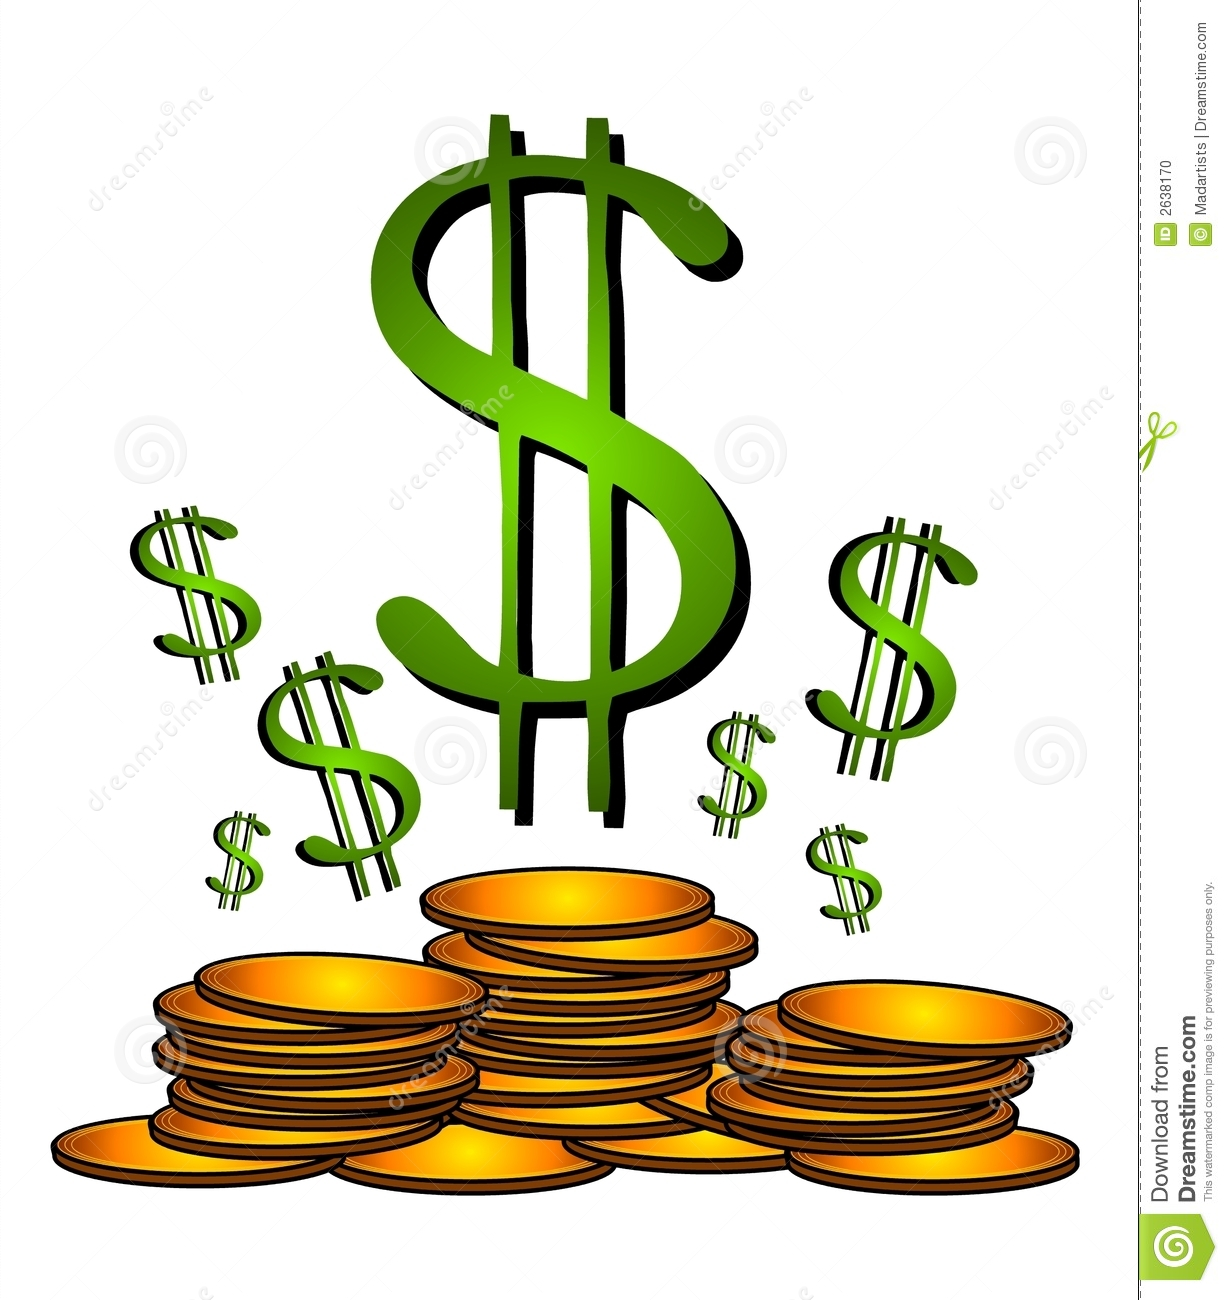 Free clipart of dollar signs jpg freeuse Green Dollar Sign Clipart | Clipart Panda - Free Clipart Images jpg freeuse